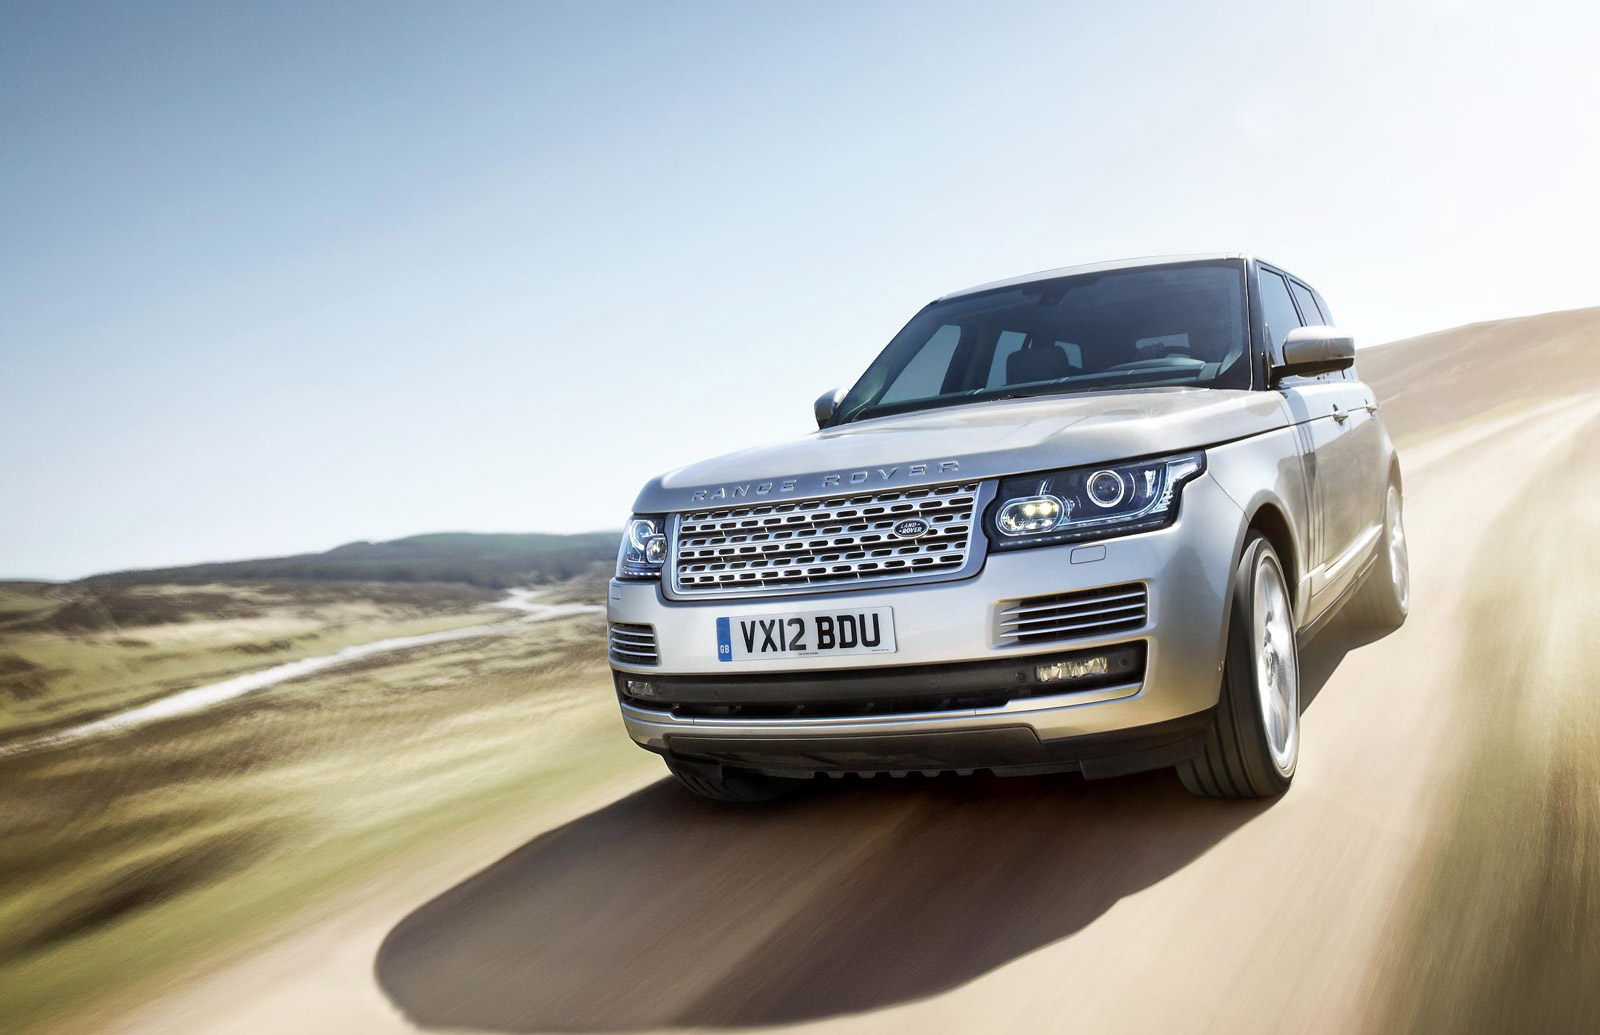 2013 Land Rover Range Full Specs New Images And Video Belt Routing